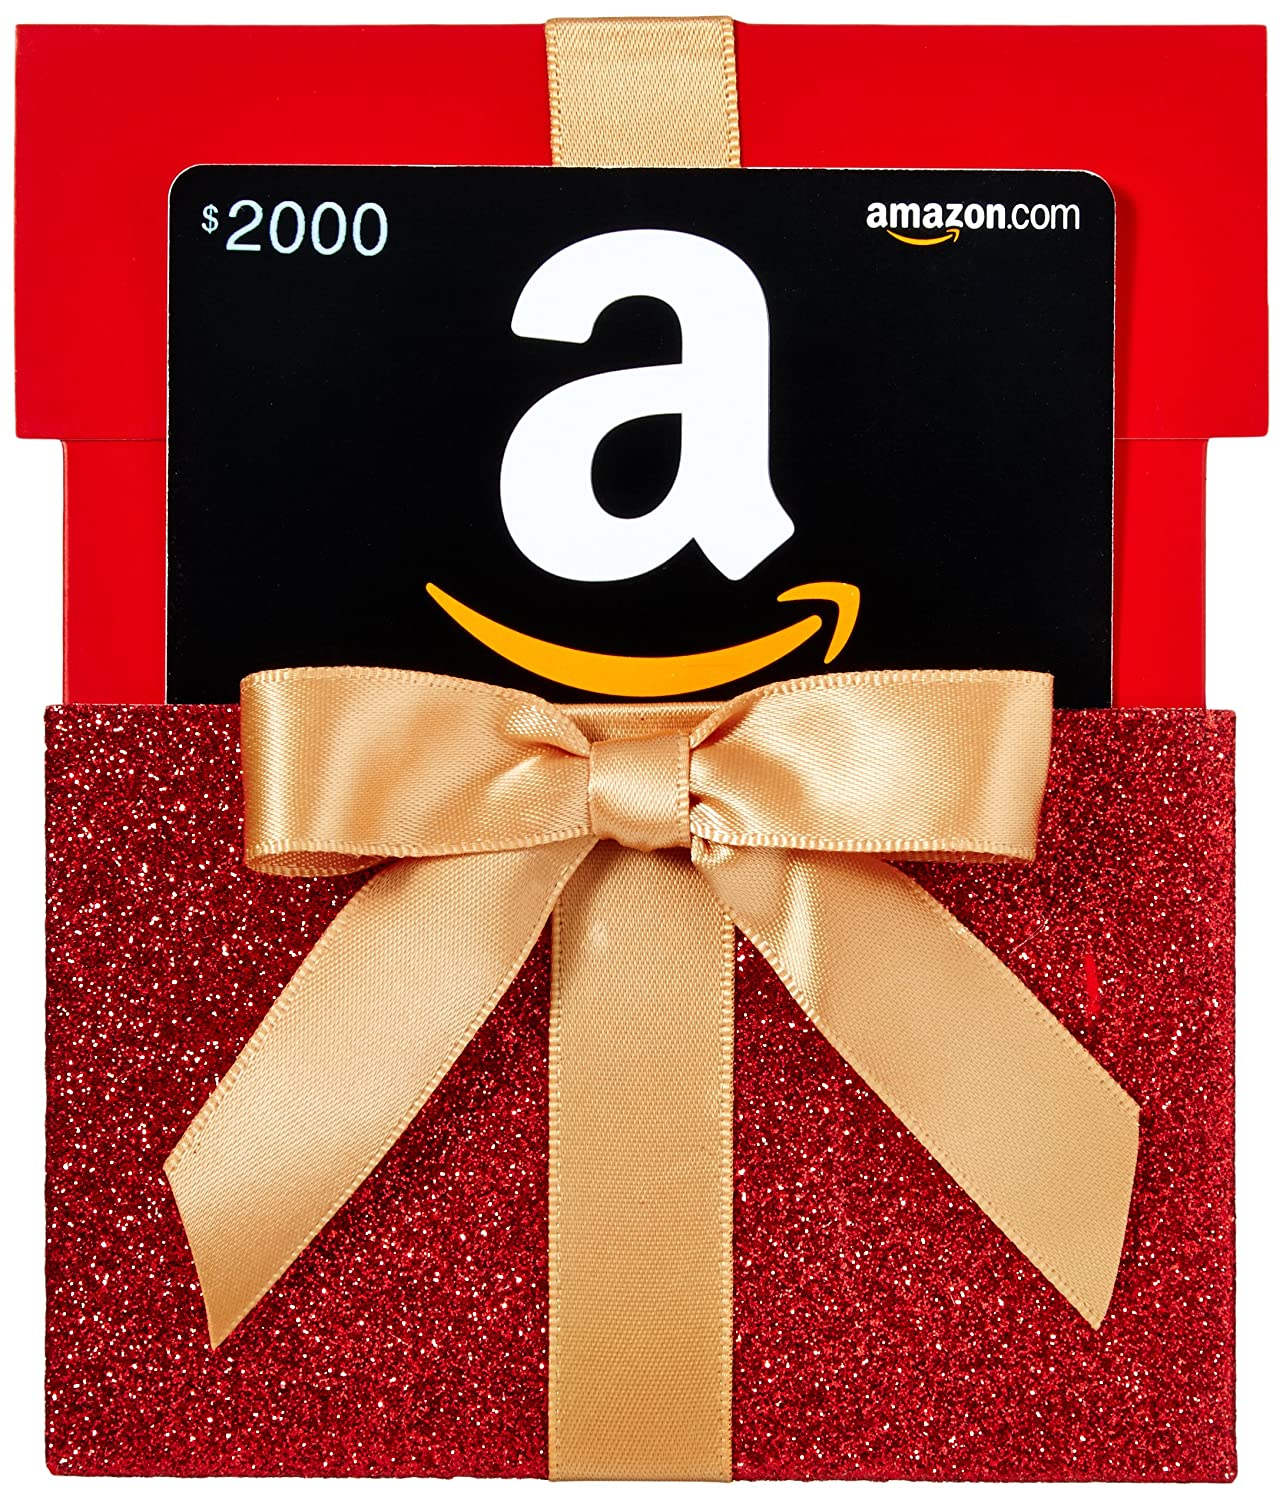 """Amazon.com Gift Card - In Gift Box Reveal"""